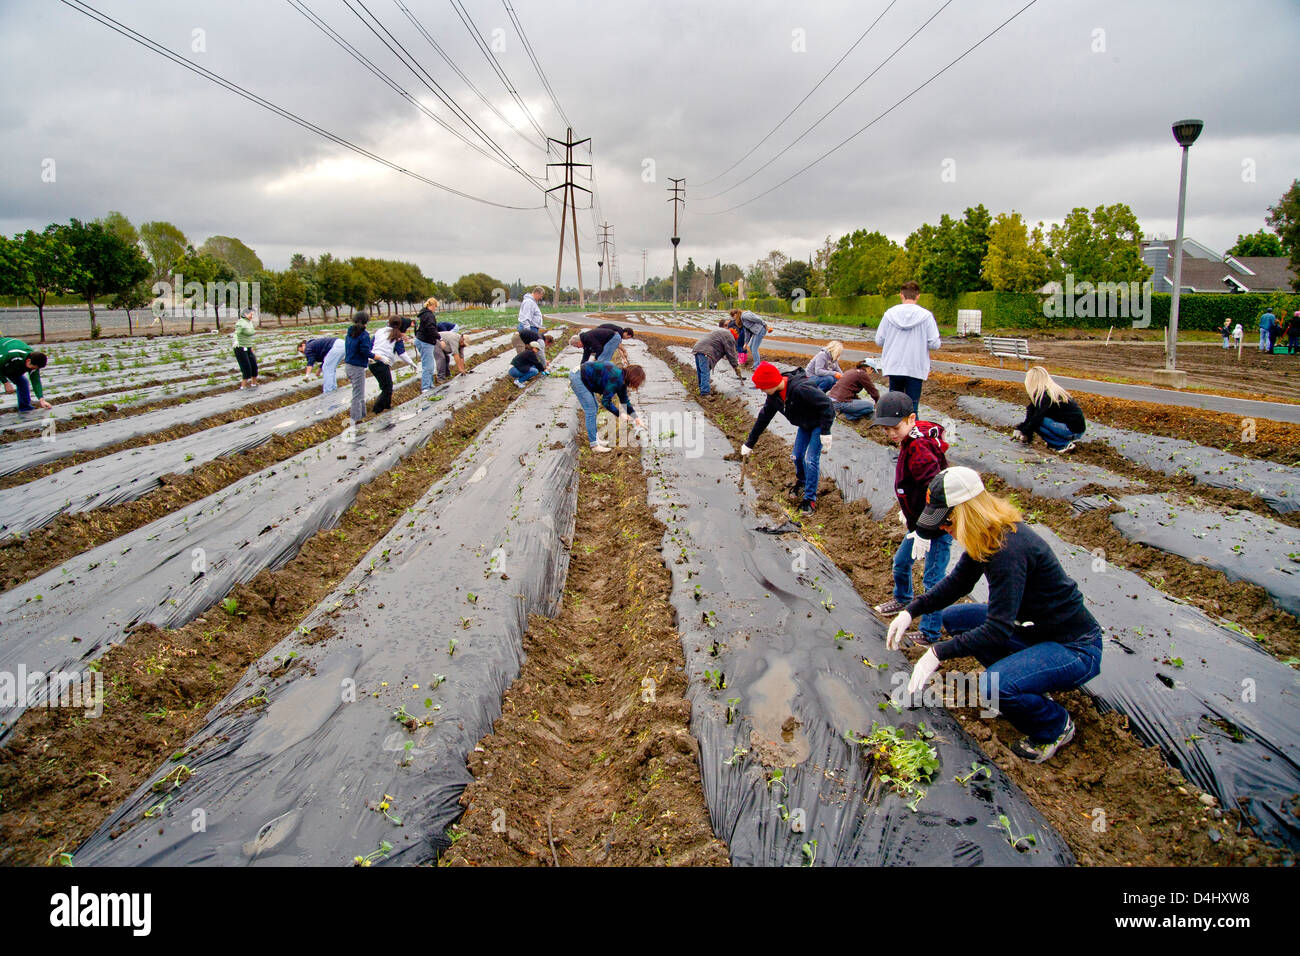 Charitable volunteers plant spinach in a muddy field in Irvine, CA, to be grown to feed the homeless. - Stock Image